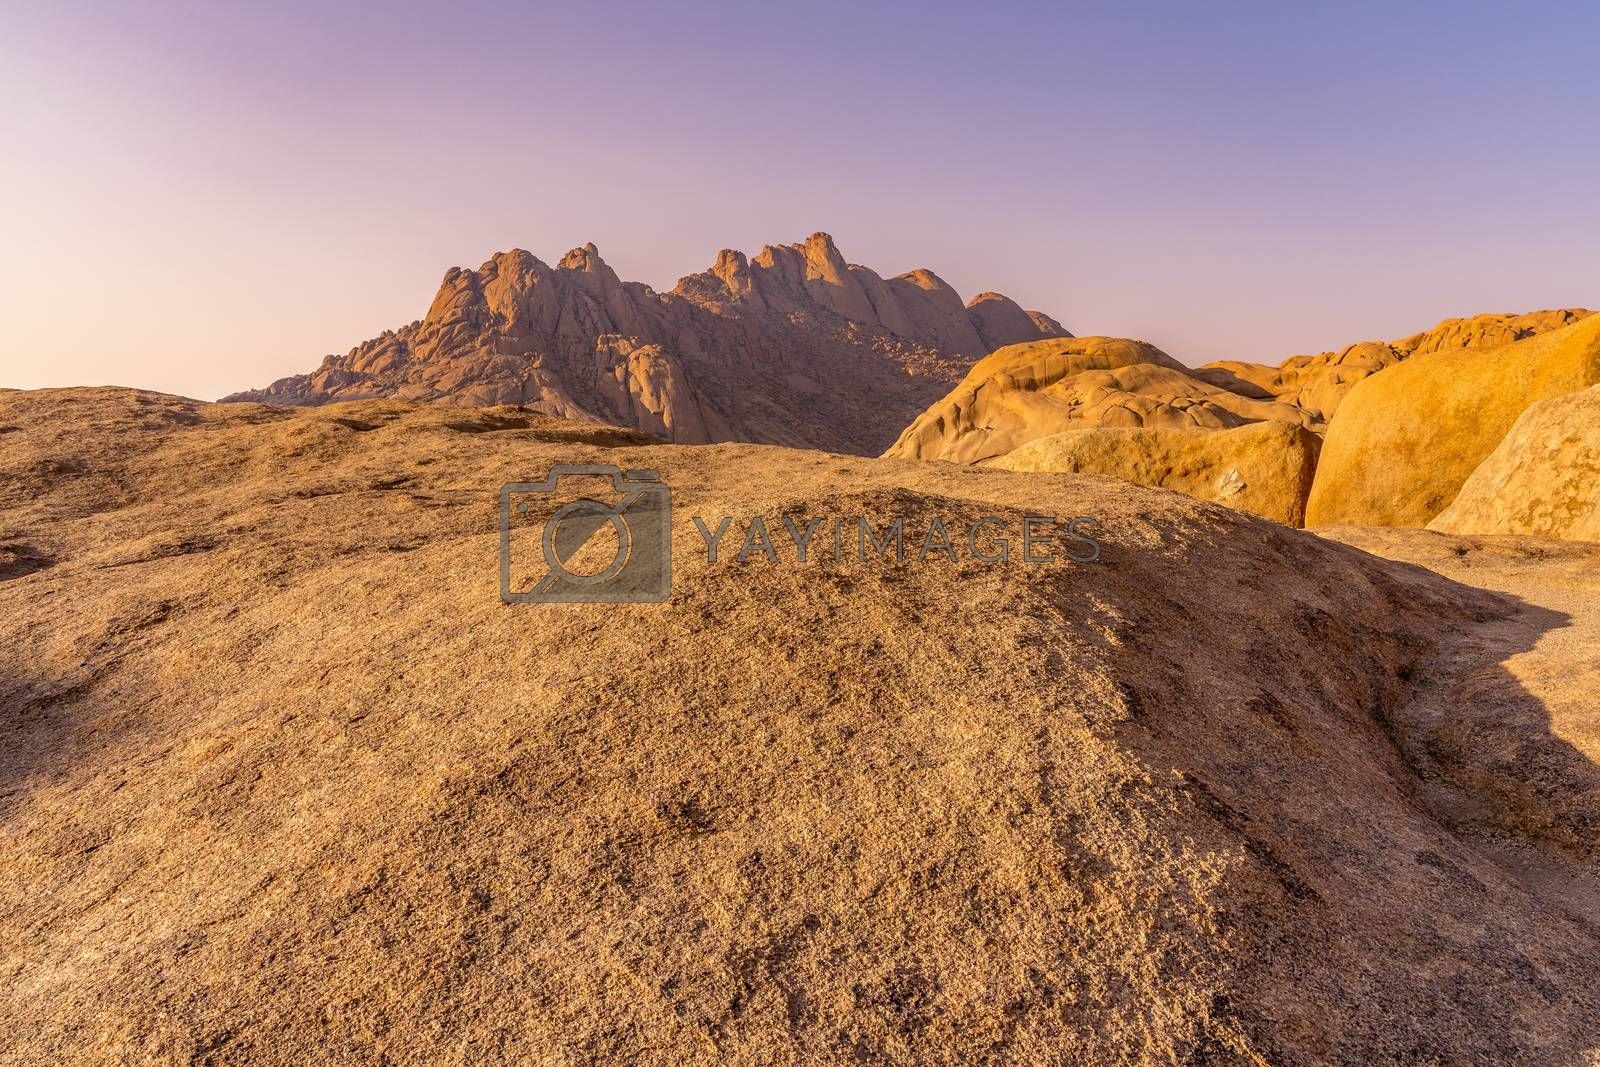 The Pondoks near the Spitzkoppe mountain at sunset in Namibia in Africa.